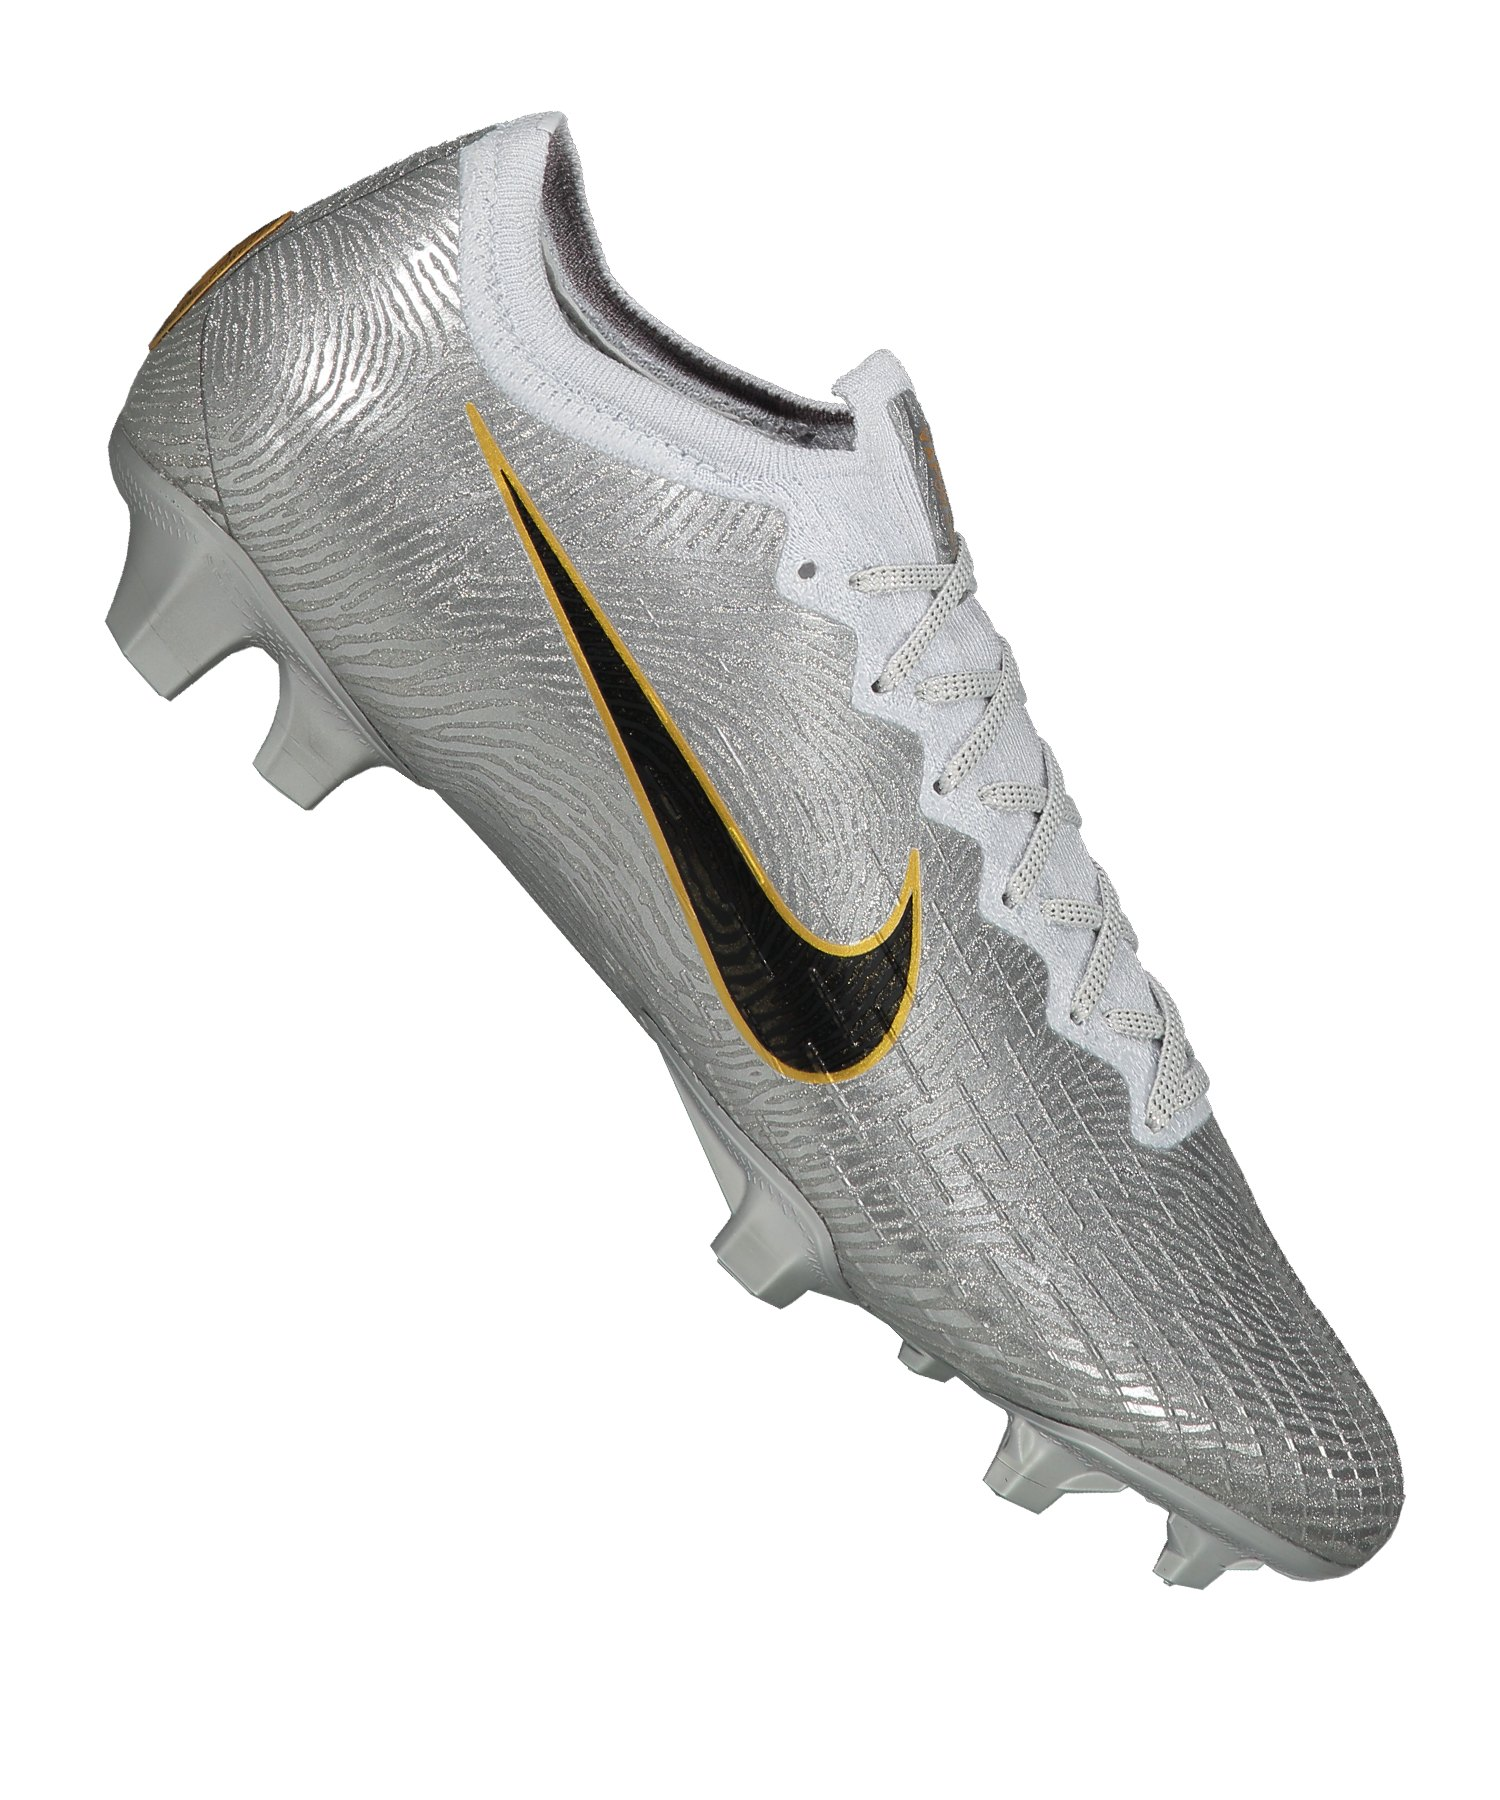 best supplier lowest price free delivery shop nike mercurial vapor xii elite fg e86a0 acf75